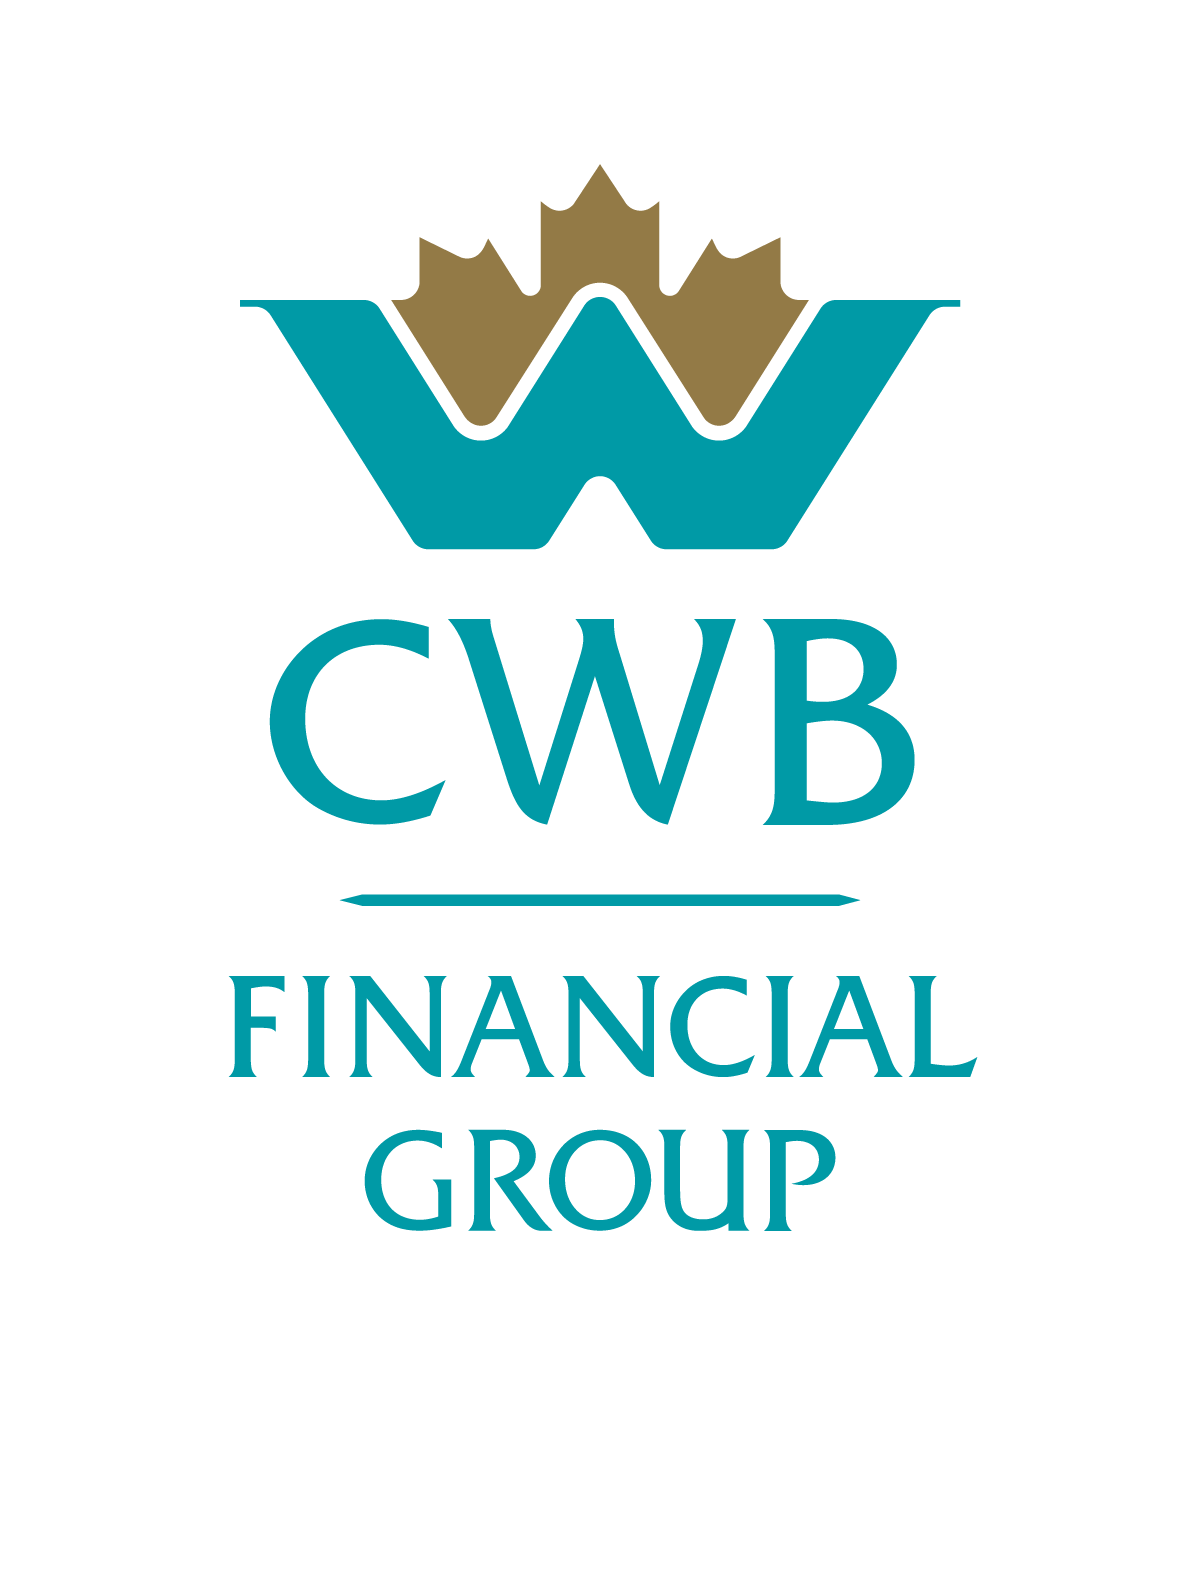 Logo_CWB Financial Group_Primary_Electronic_RGB.png